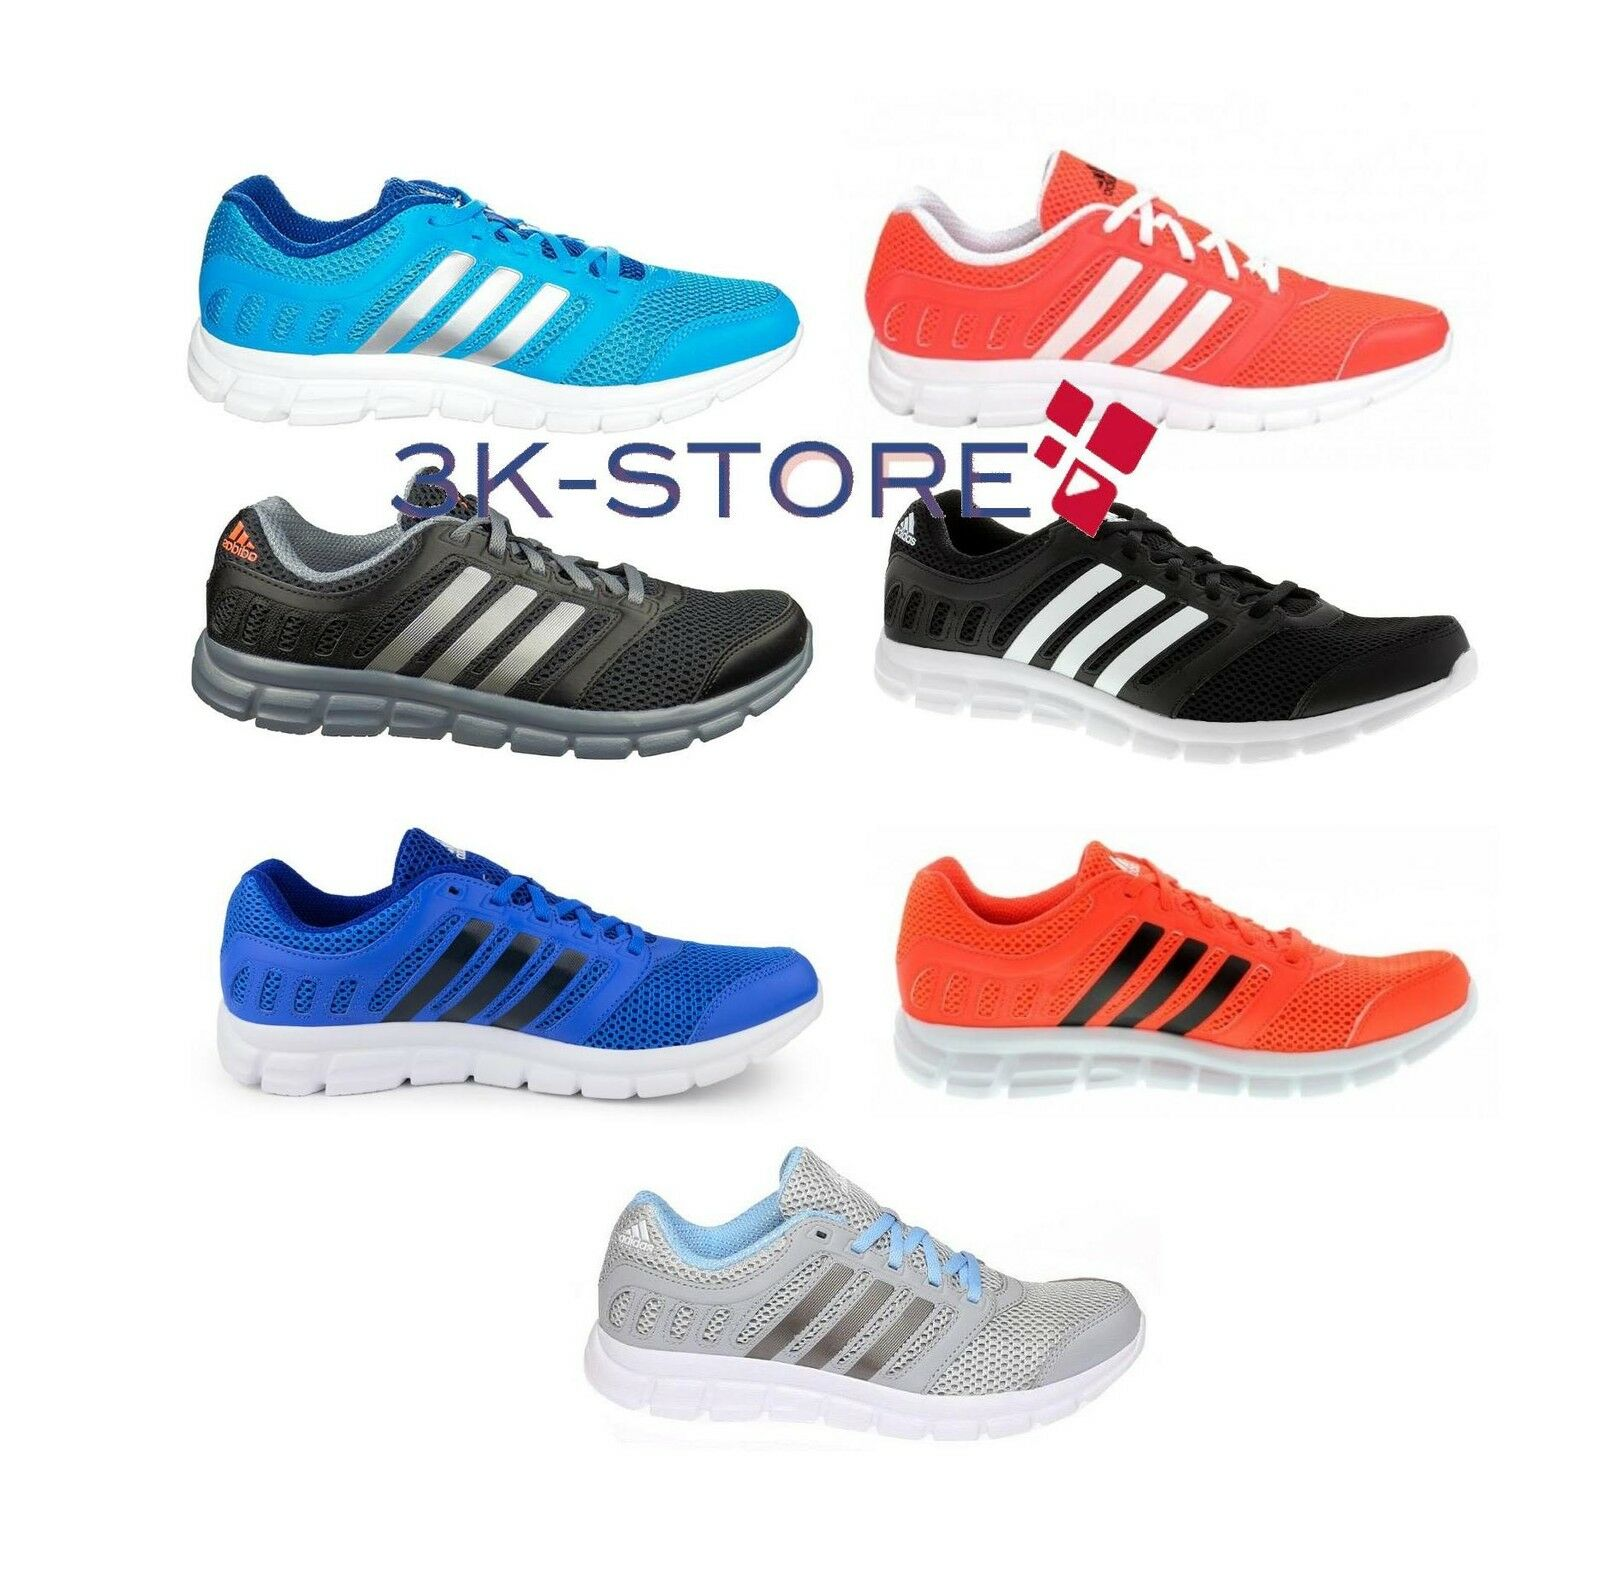 CHAUSSURE CHAUSSURES HOMME HOMMES RUNNING ADIDAS BREEZE 101 2m